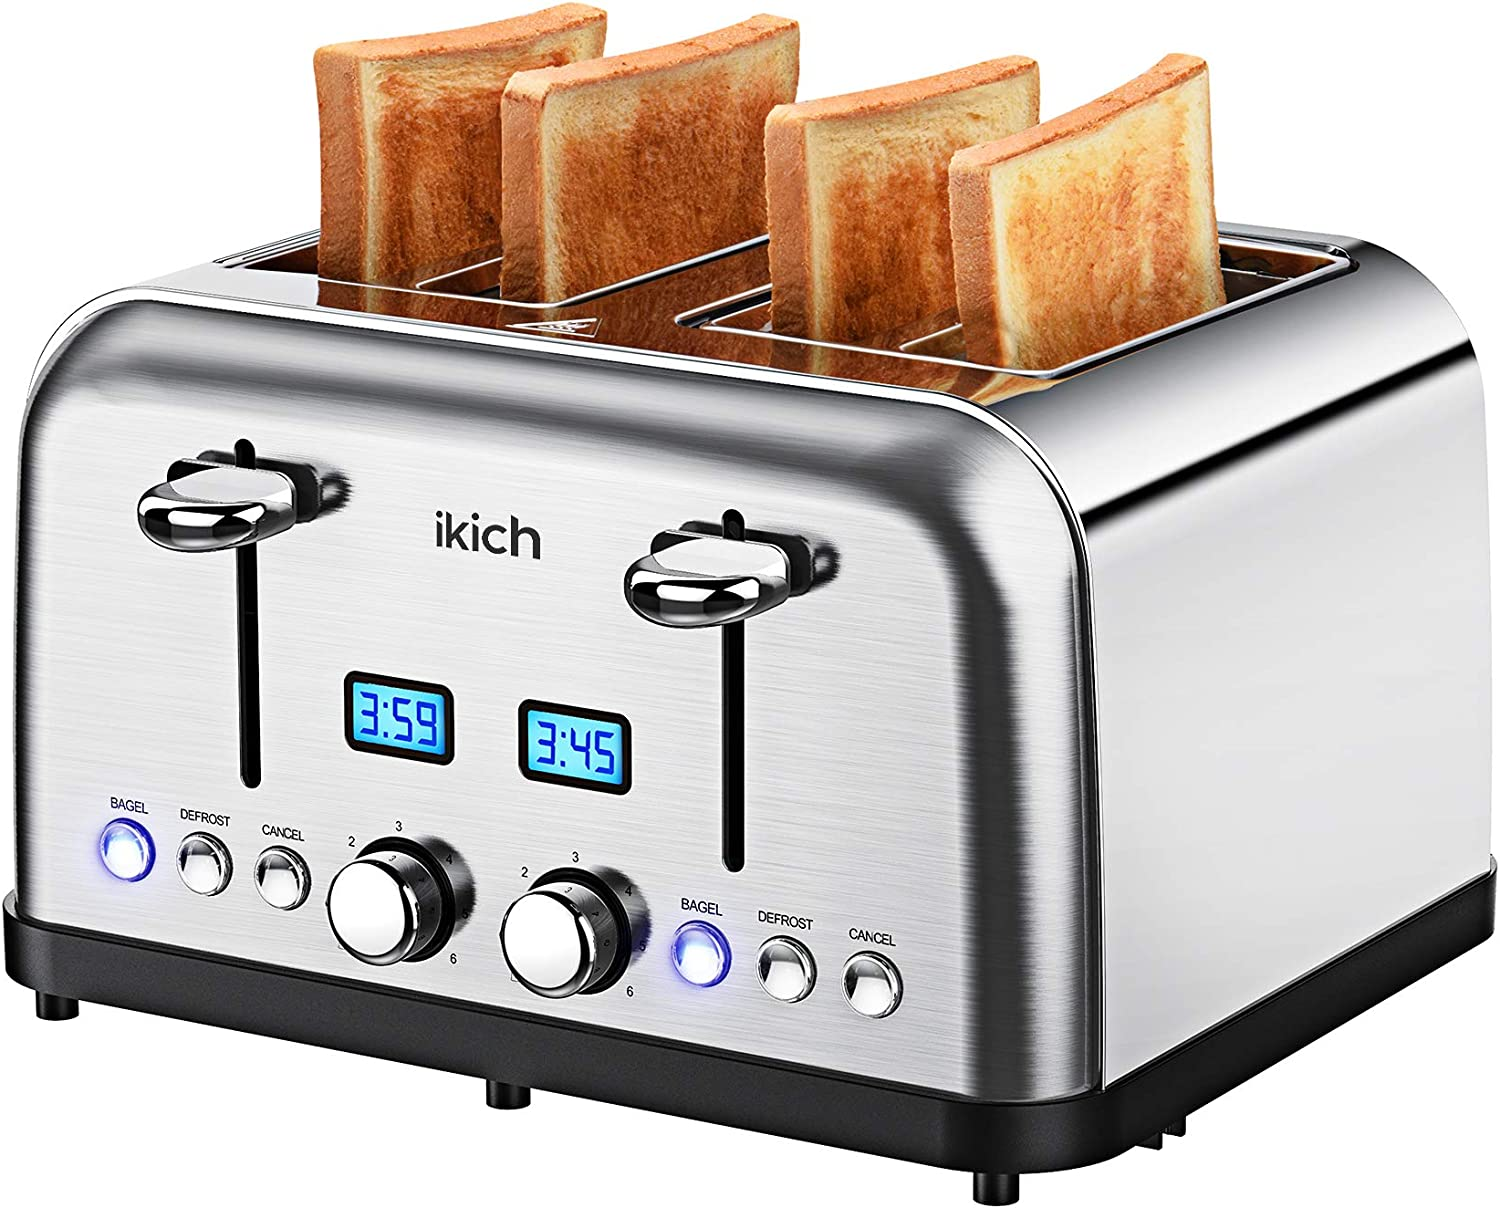 4 Slice Toaster, IKICH Toaster Stainless Steel, Digital Countdown Toasters(6 Bread Settings, Bagel/Defrost/Reheat/Cancel, 4 Slots, Crumb Tray, 1500W)